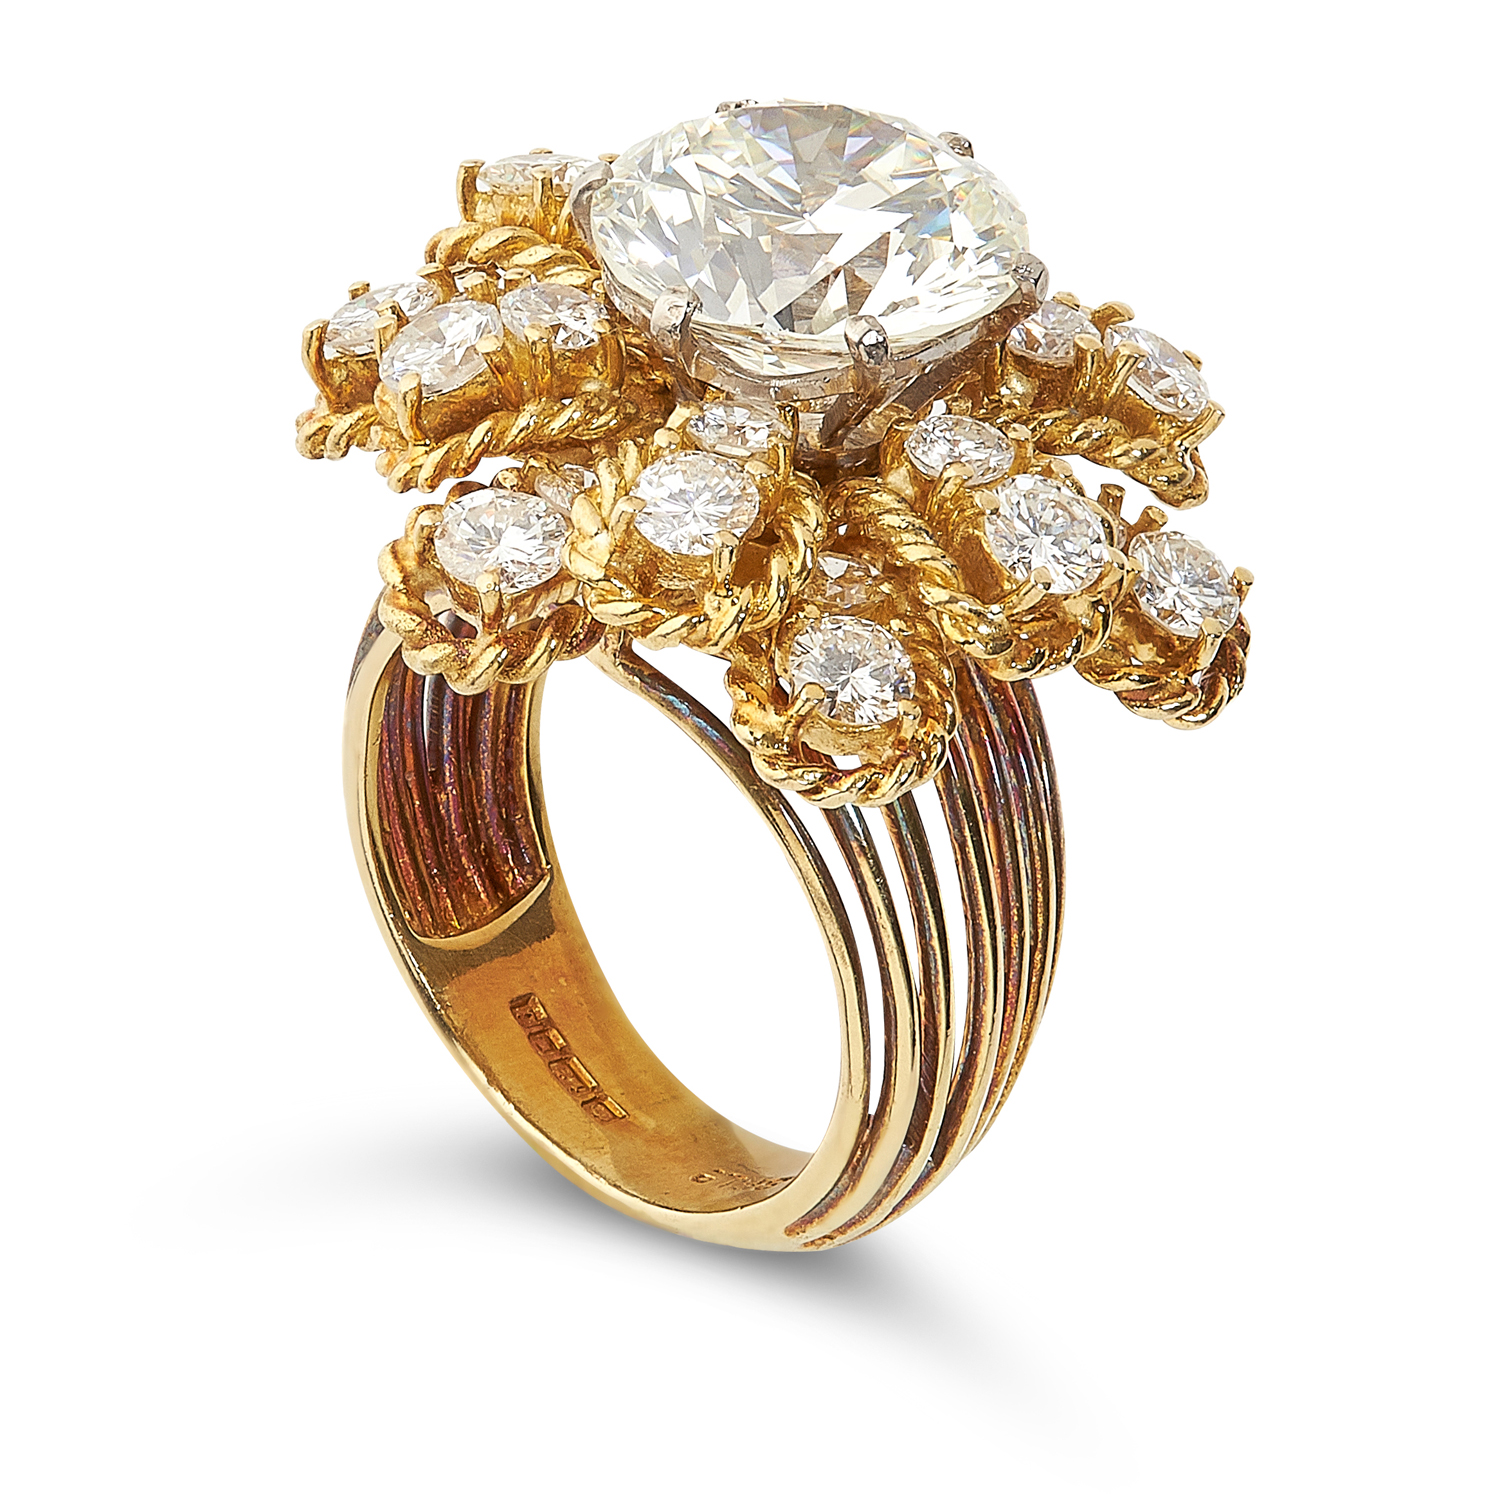 A VINTAGE 4.76 CARAT DIAMOND RING, BEN ROSENFELD 1964 in 18ct yellow gold, set with a central - Image 3 of 4